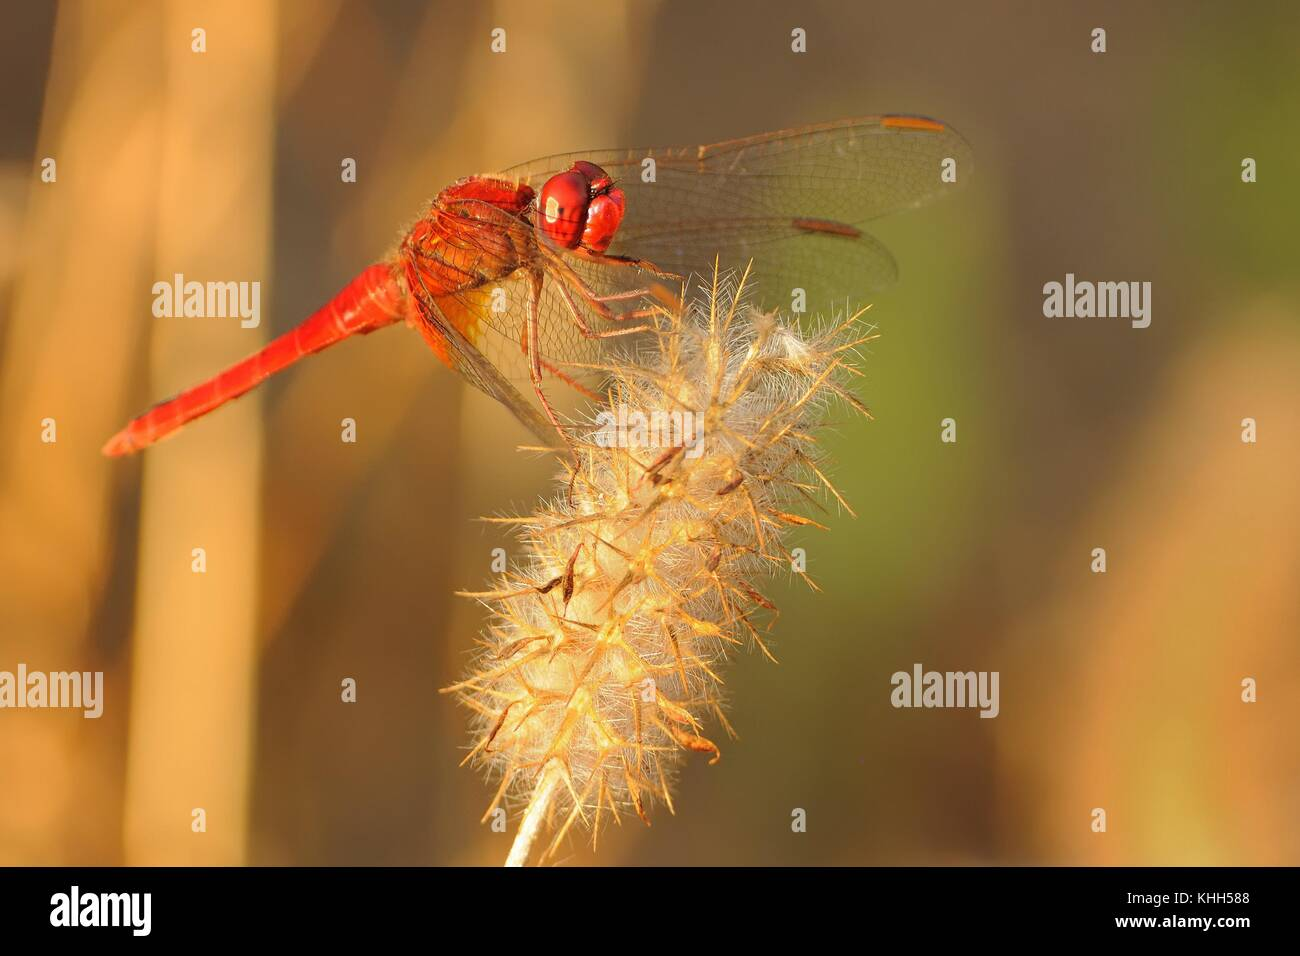 Scarlet dragonfly (Crocothemis erythraea) perched on the dry flower of grass enlightened by evening sun. Stock Photo